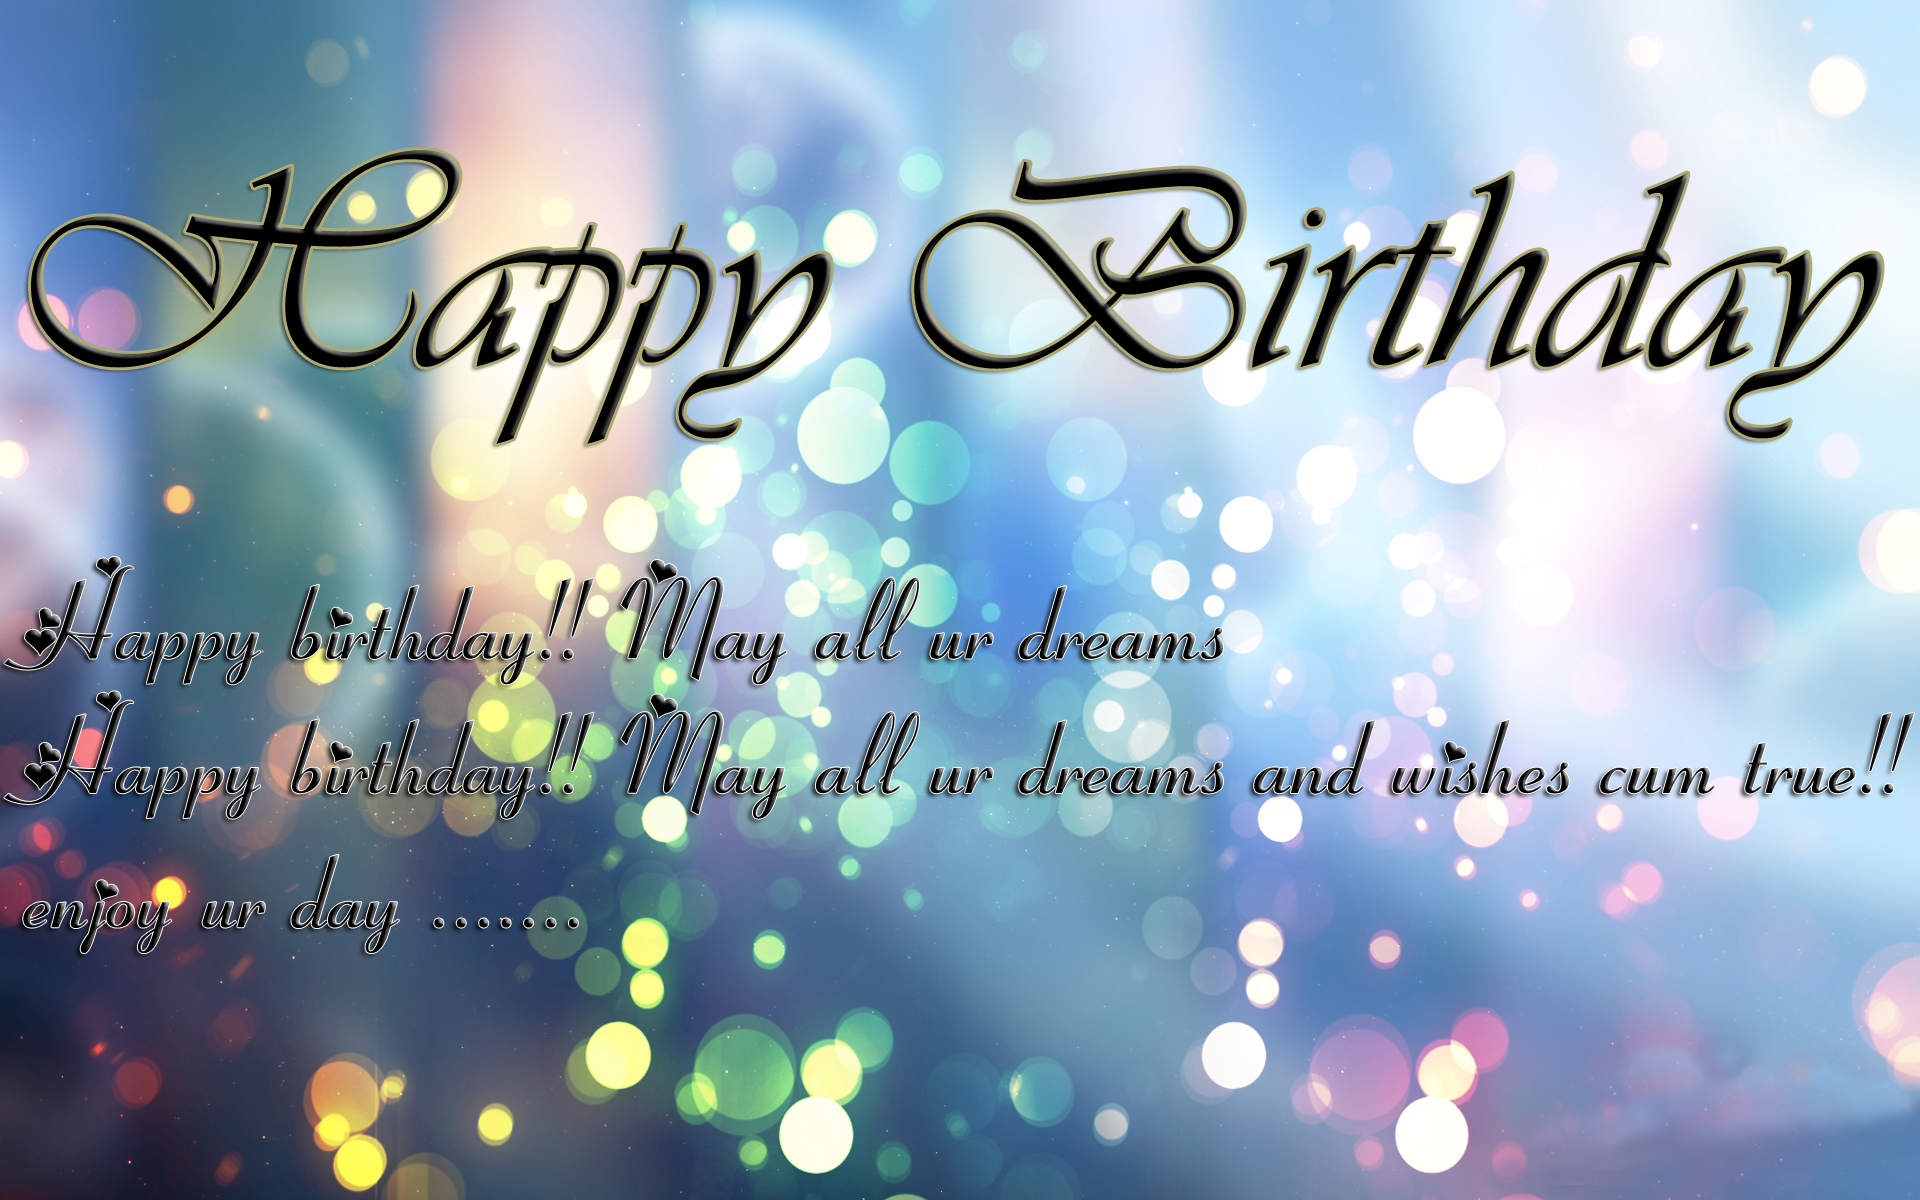 Happy Birthday Wishes For Friend Images Free Download